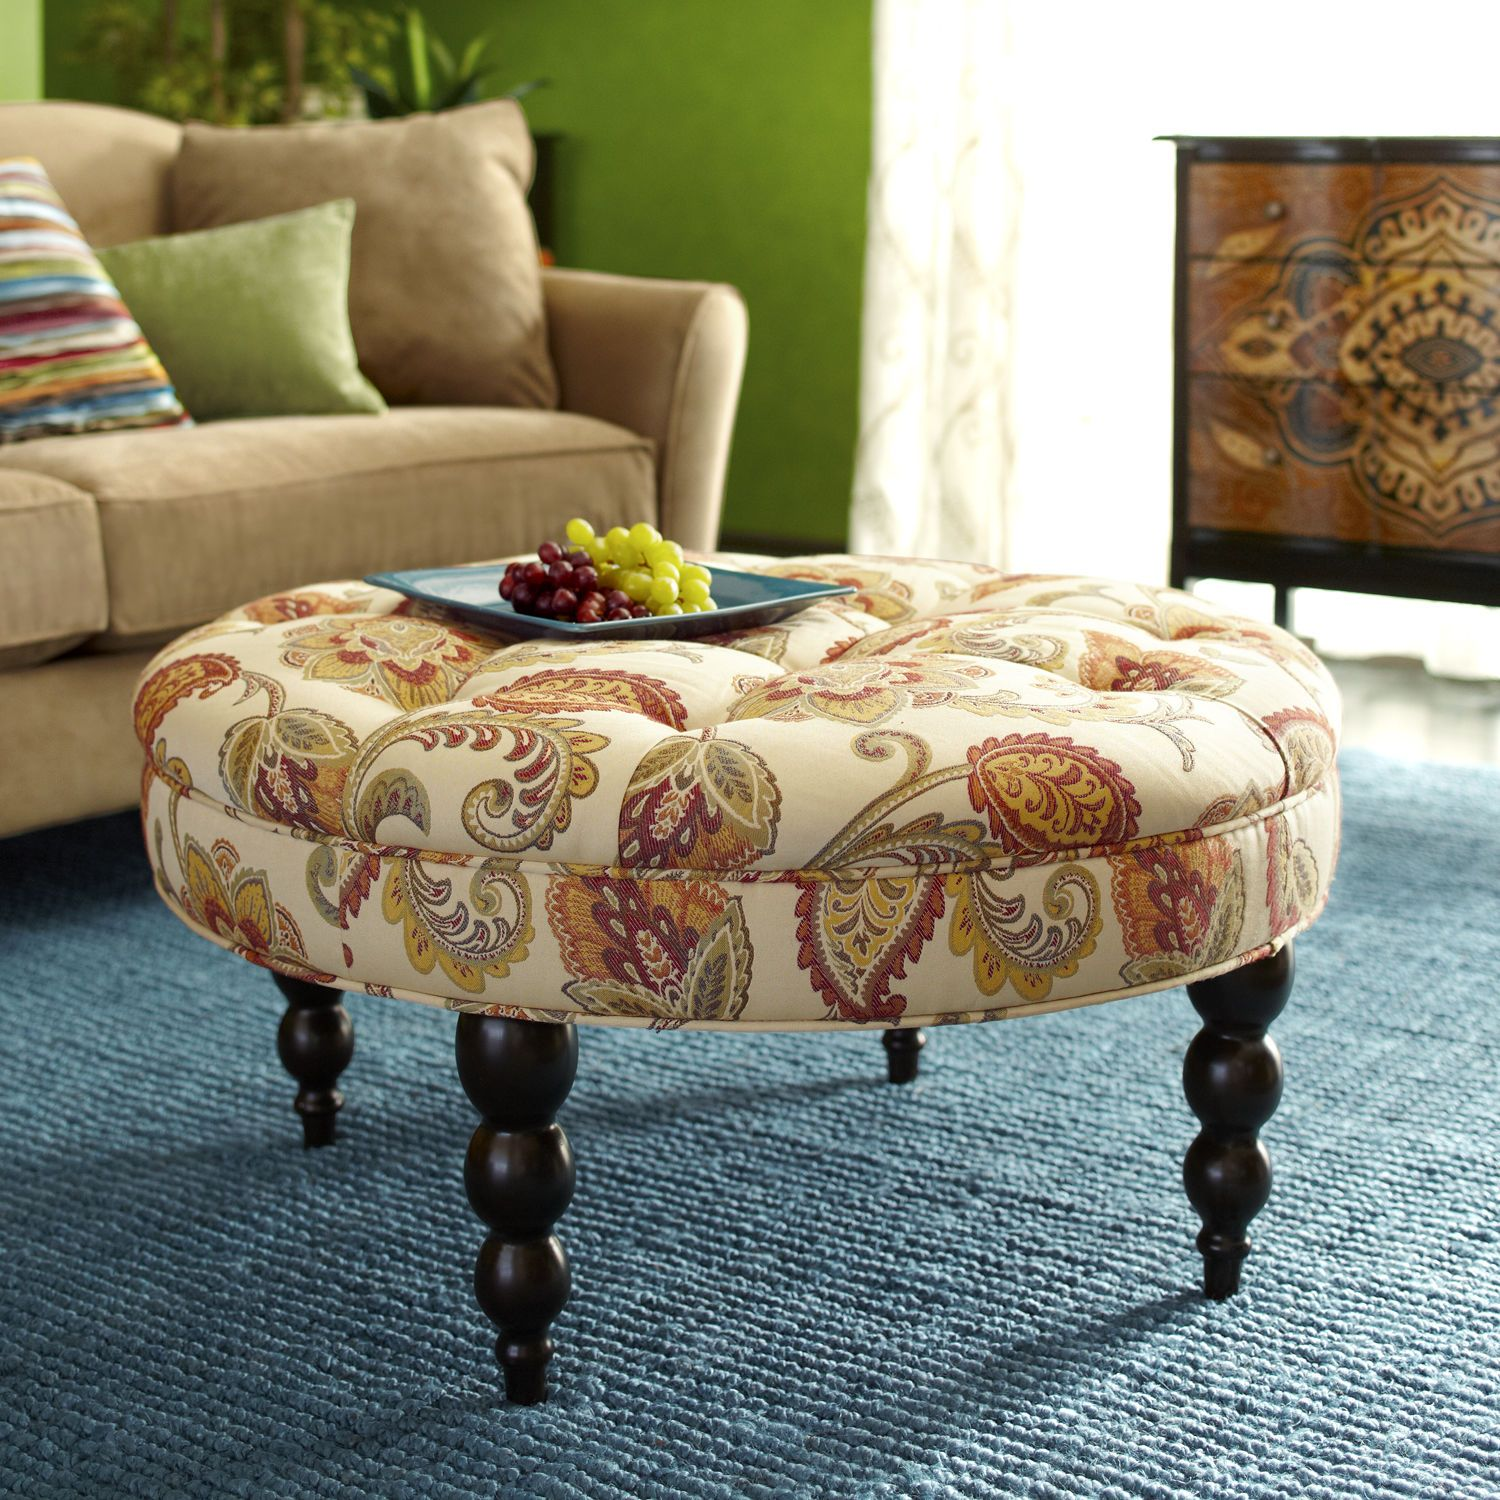 Groovy Tufted Ottoman Jacobean Ochre Pier 1 Imports Home Ibusinesslaw Wood Chair Design Ideas Ibusinesslaworg